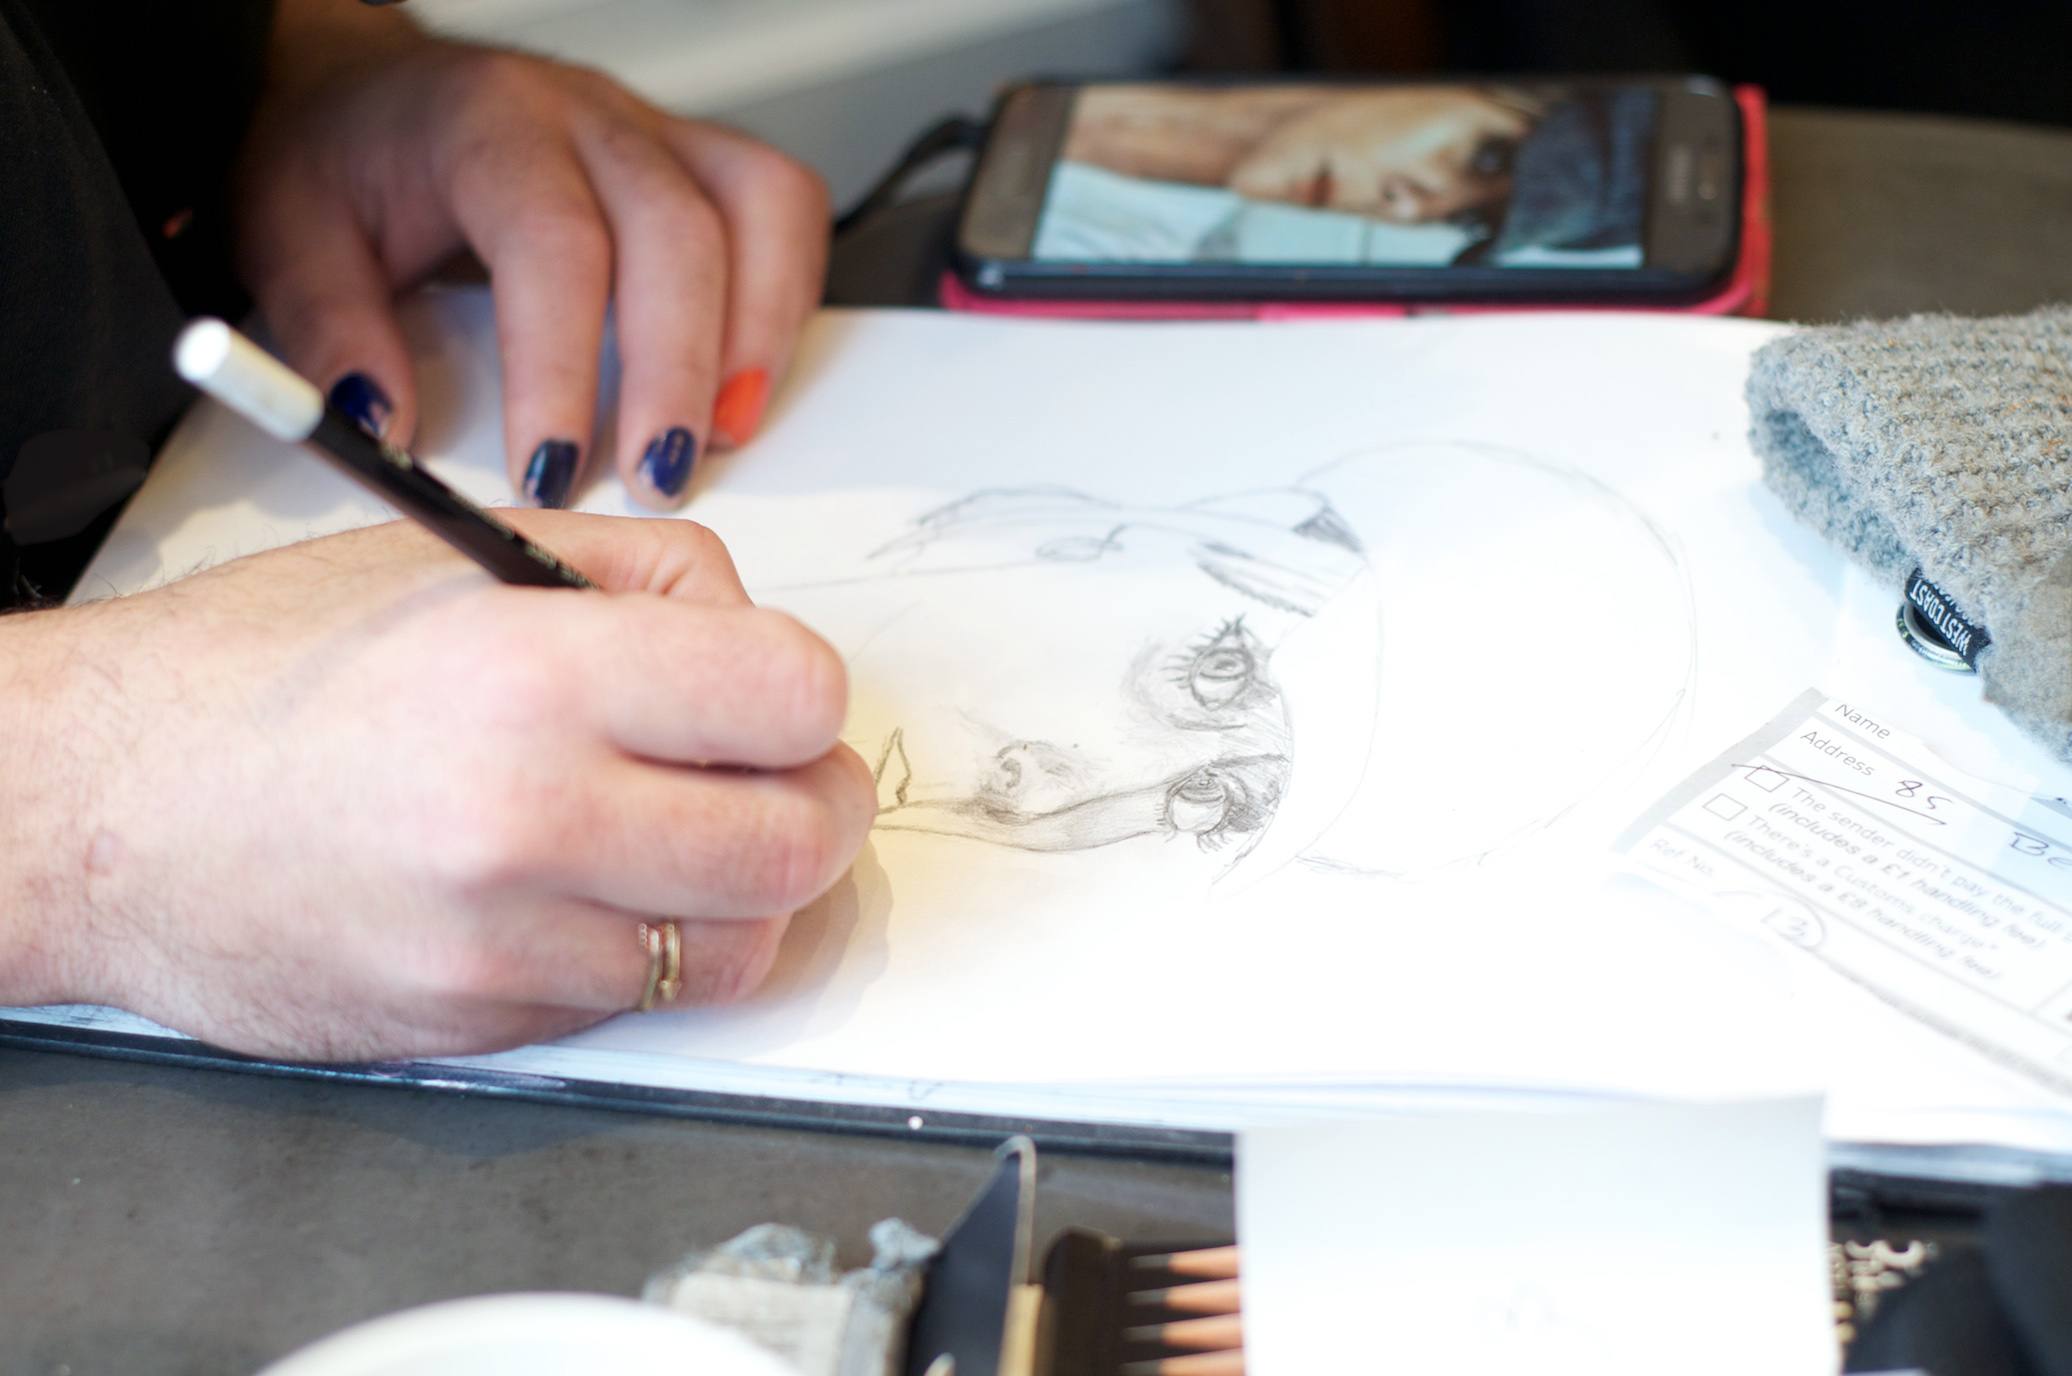 A customer at Paper and Cup takes time out to draw a portrait based on a photo on his phone.